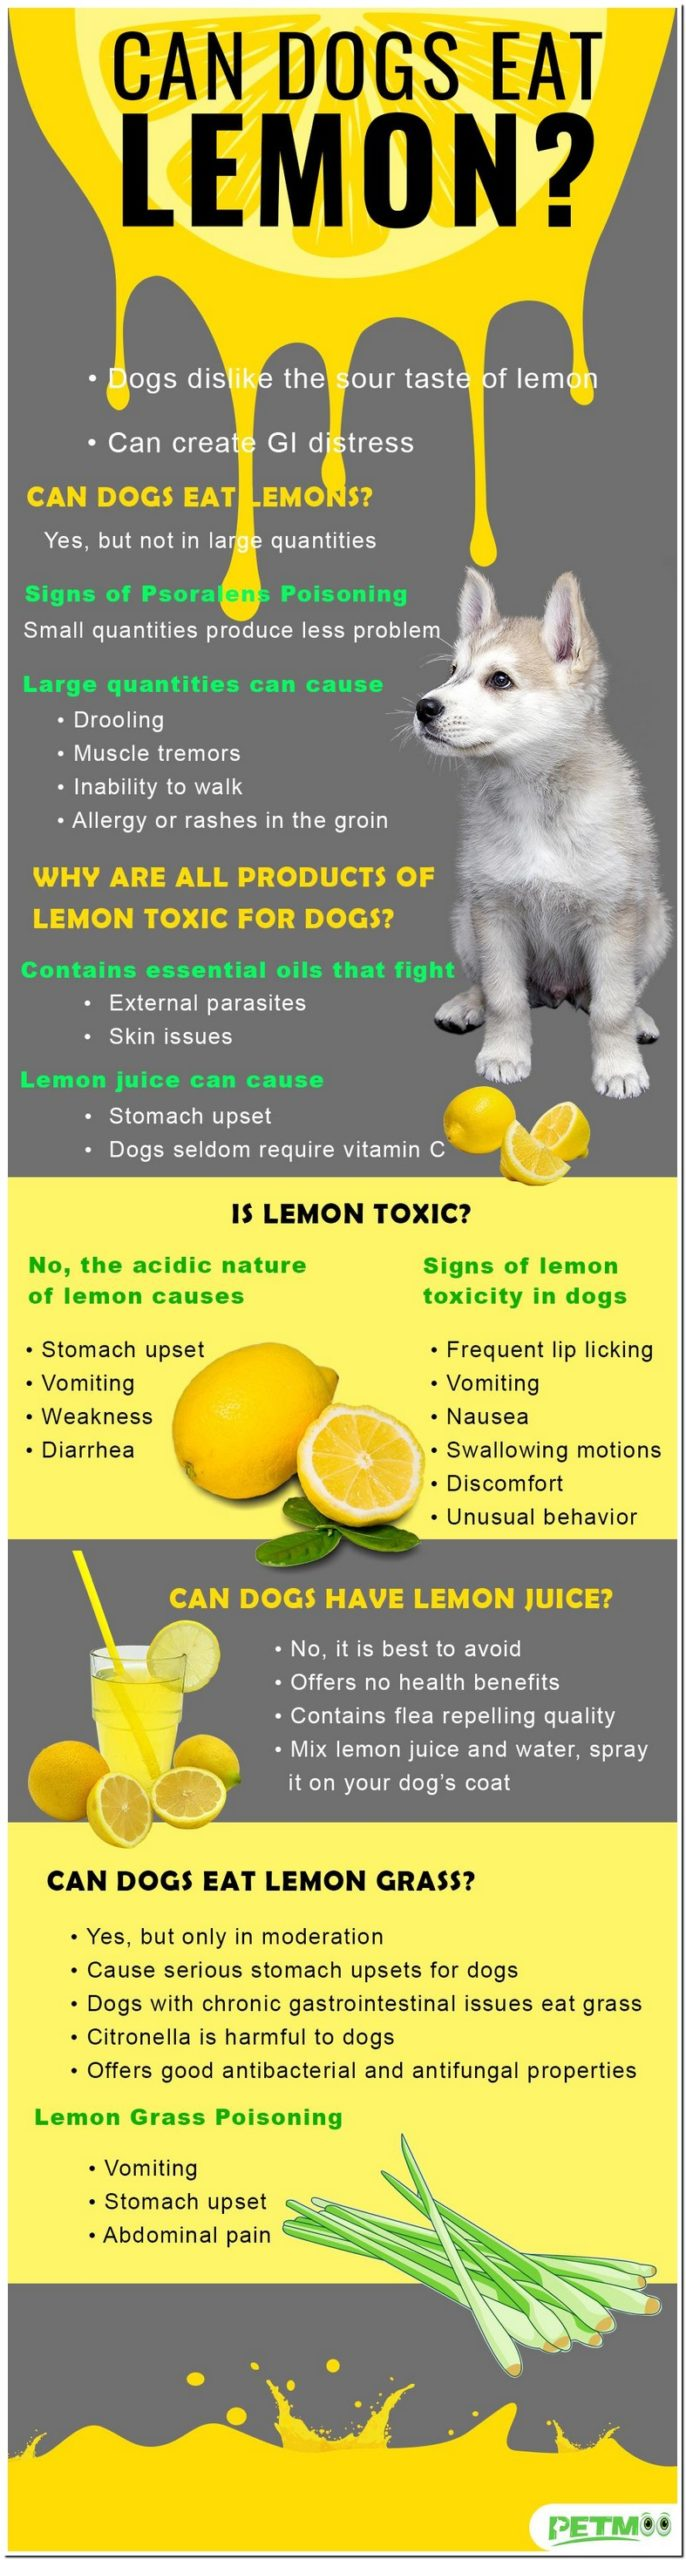 Are Lemons Toxic For Dogs